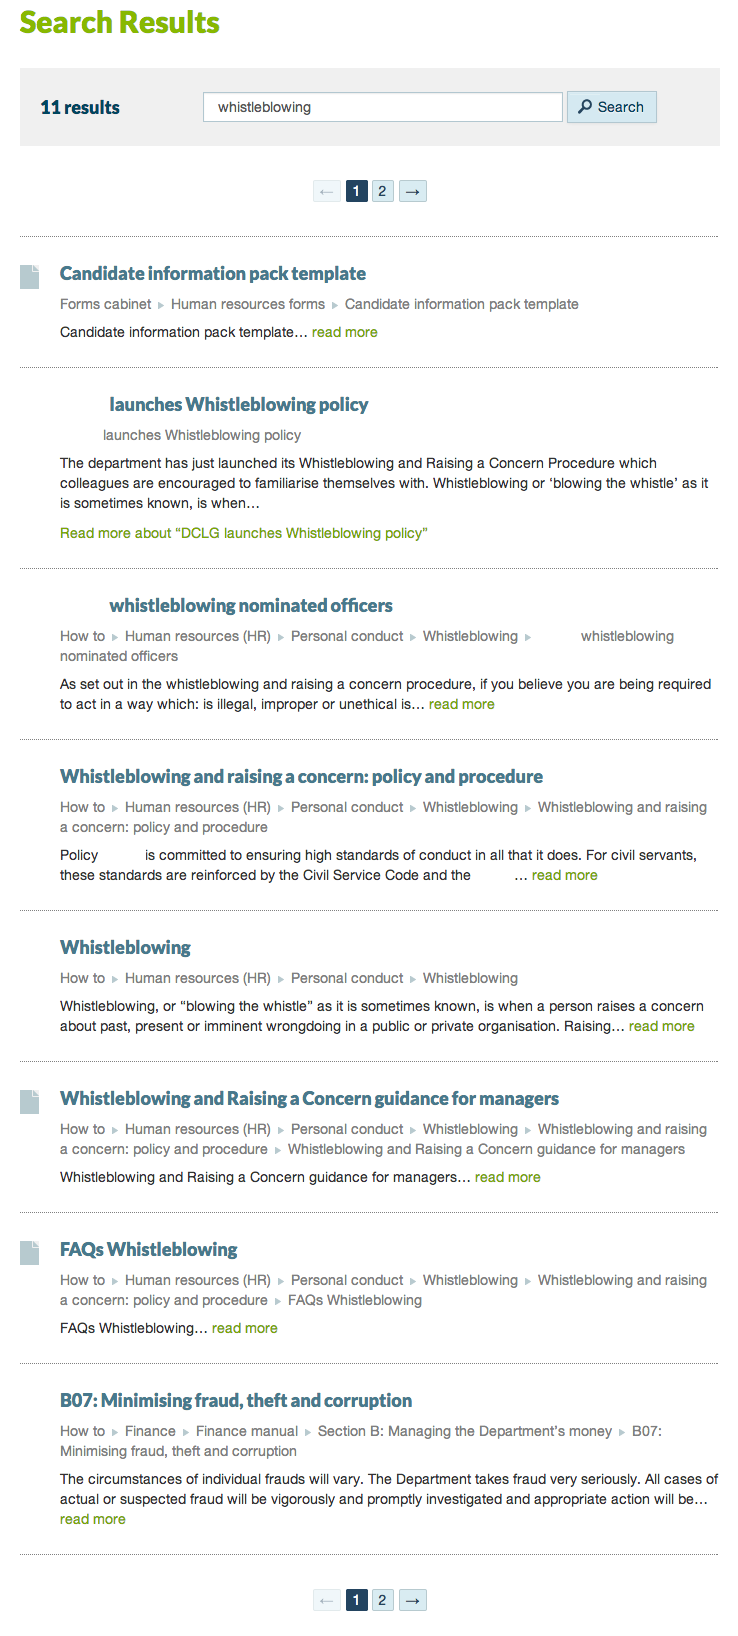 Intranet A: whistleblowing